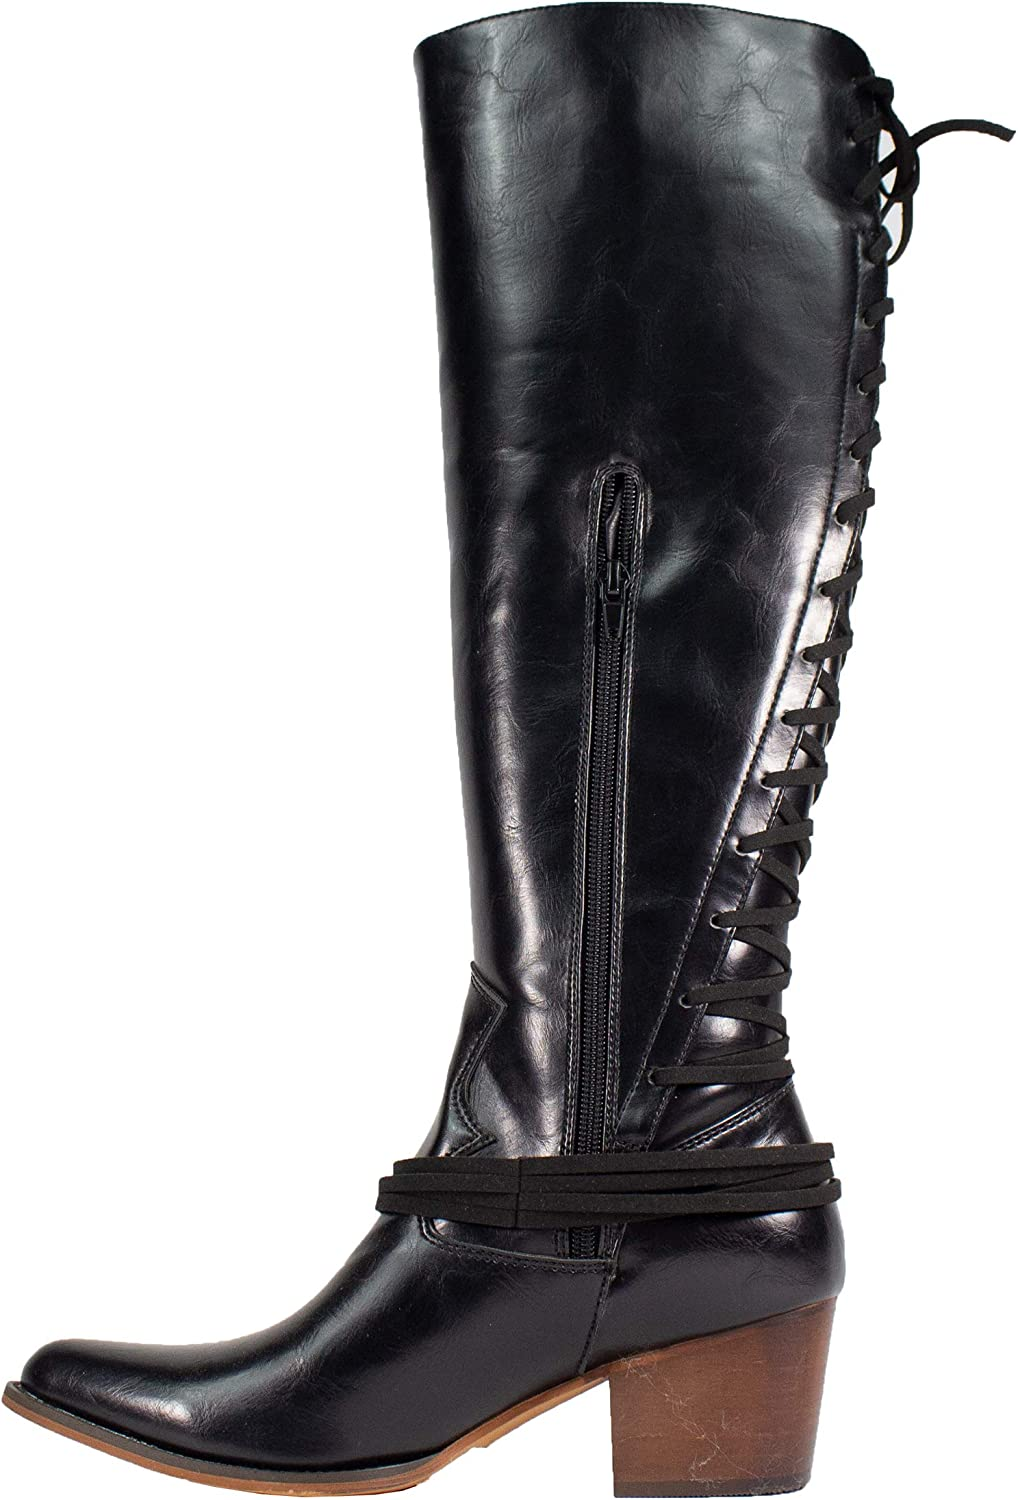 ARIDERGIRL Haley Whiskey Knee-High Pointed Toe Lace Up Back Inside Zipper Western Boot